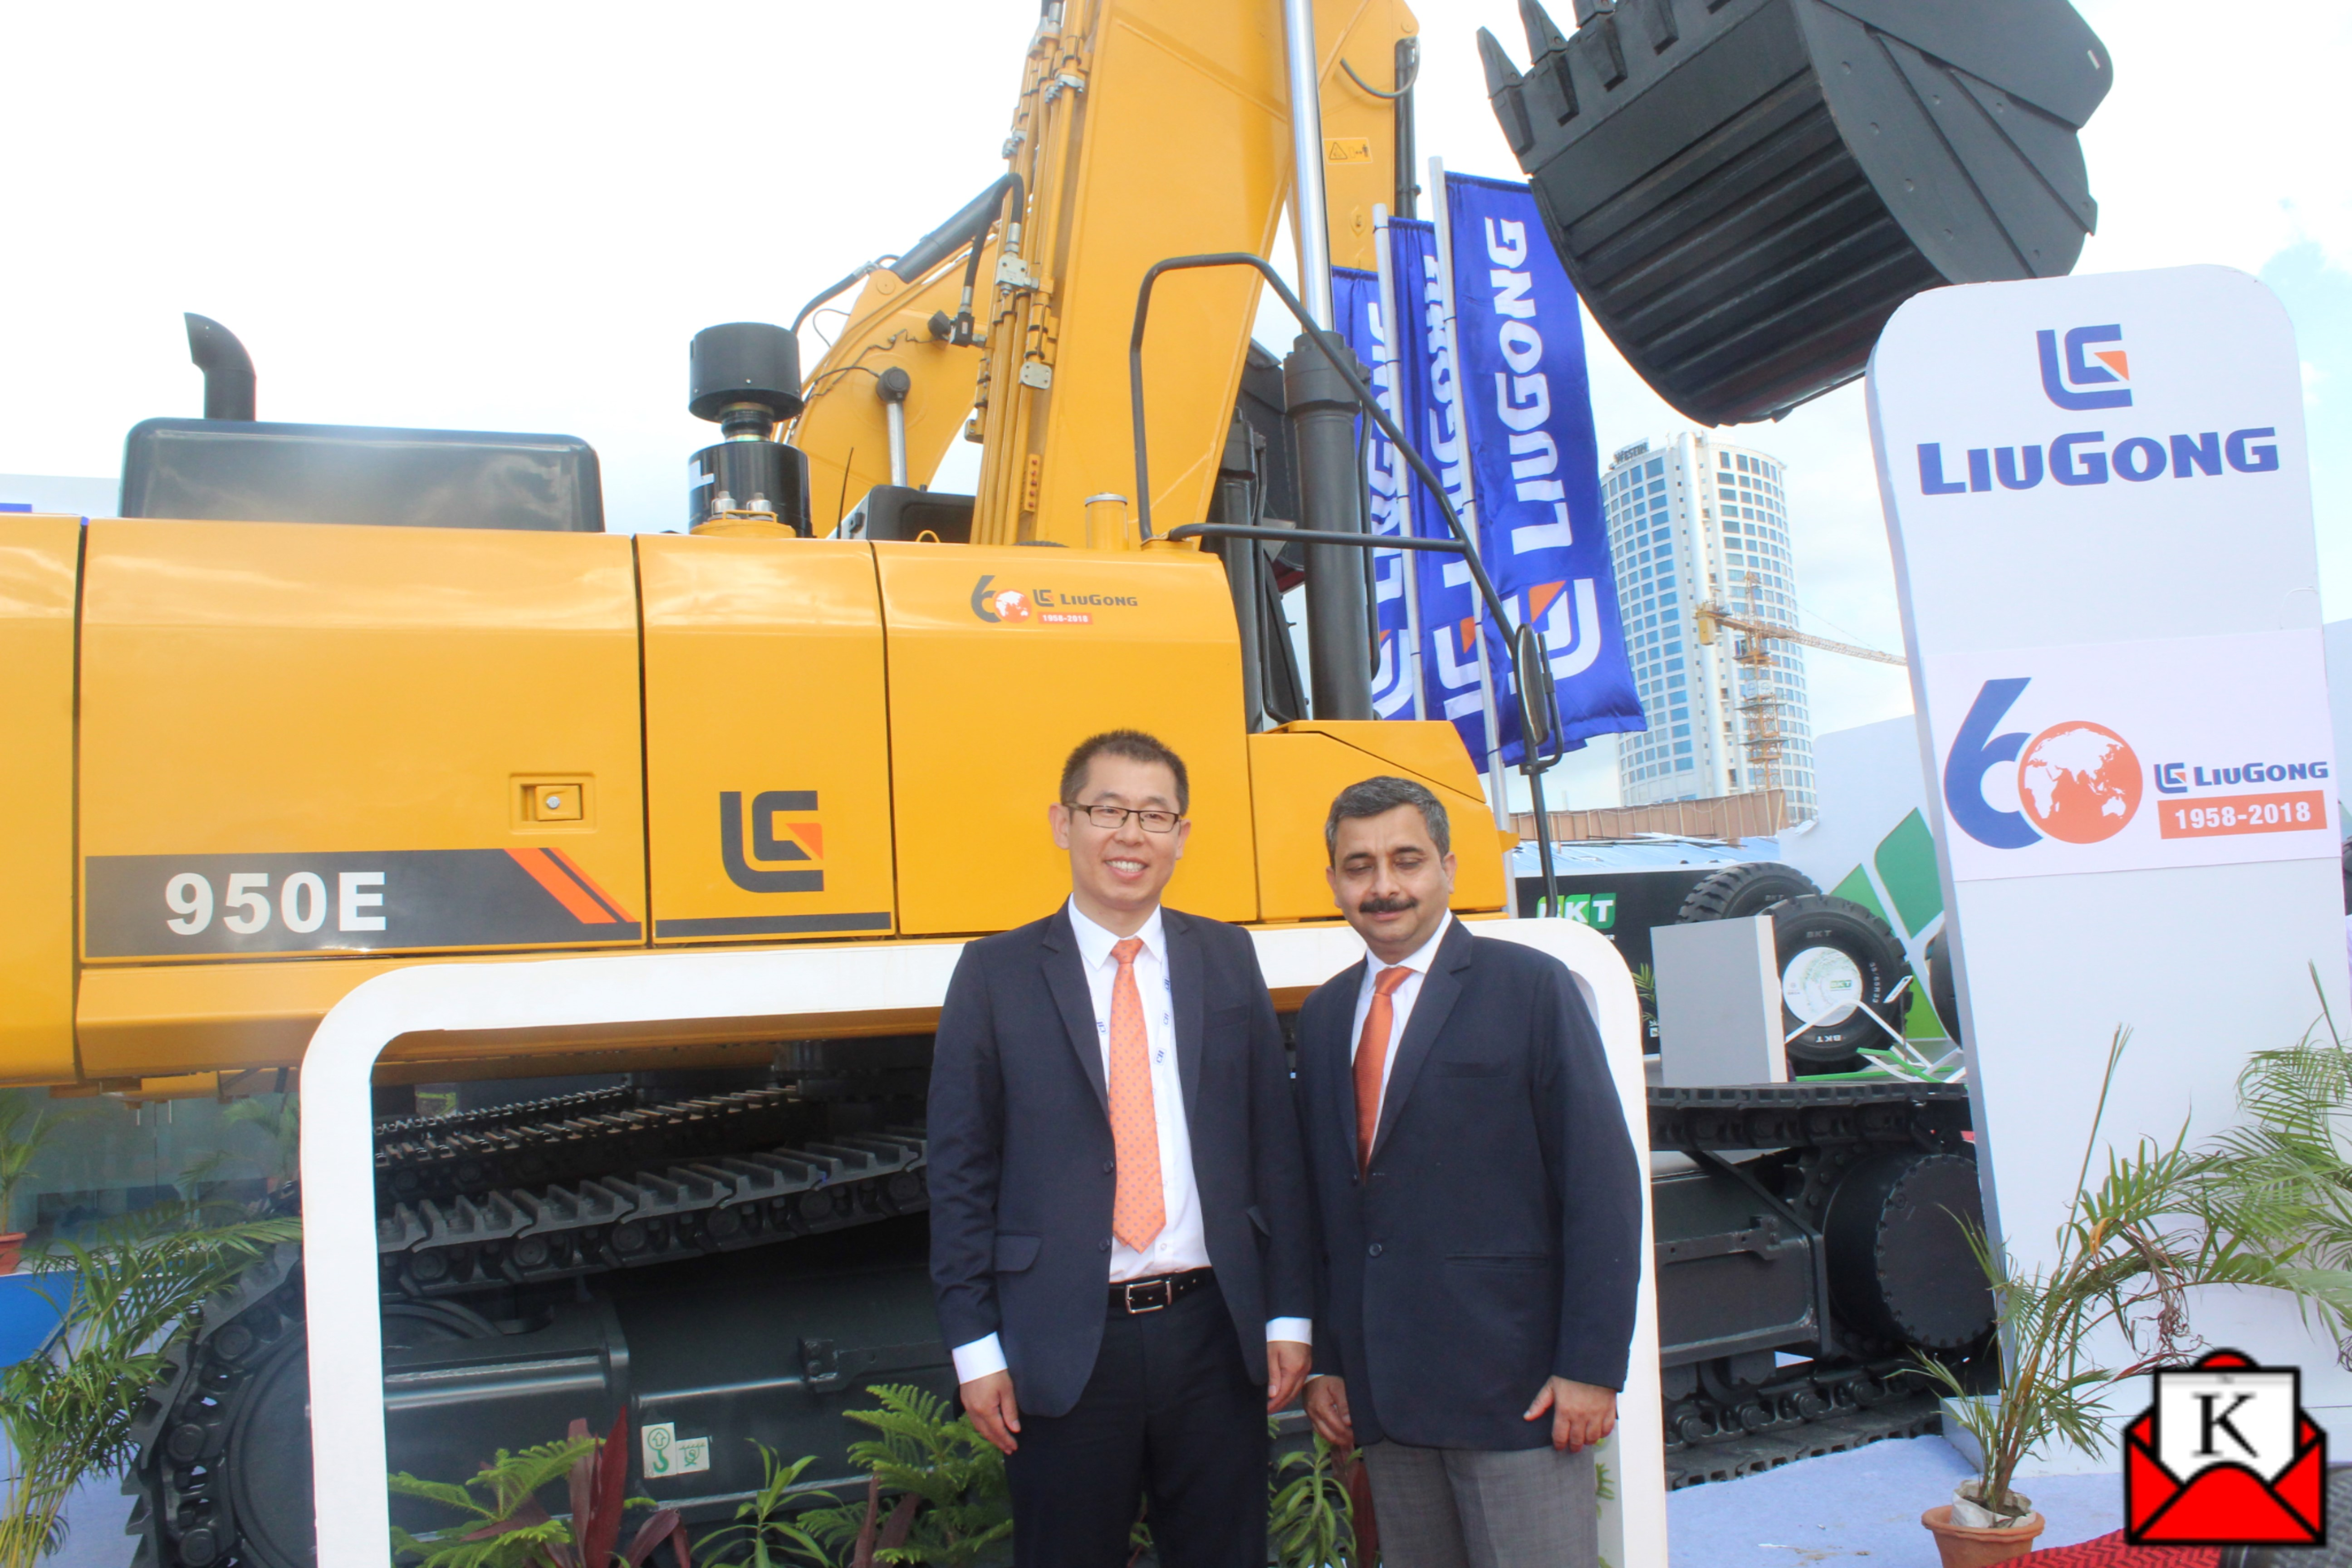 LiuGong India Launched Two Products at IMME 2018